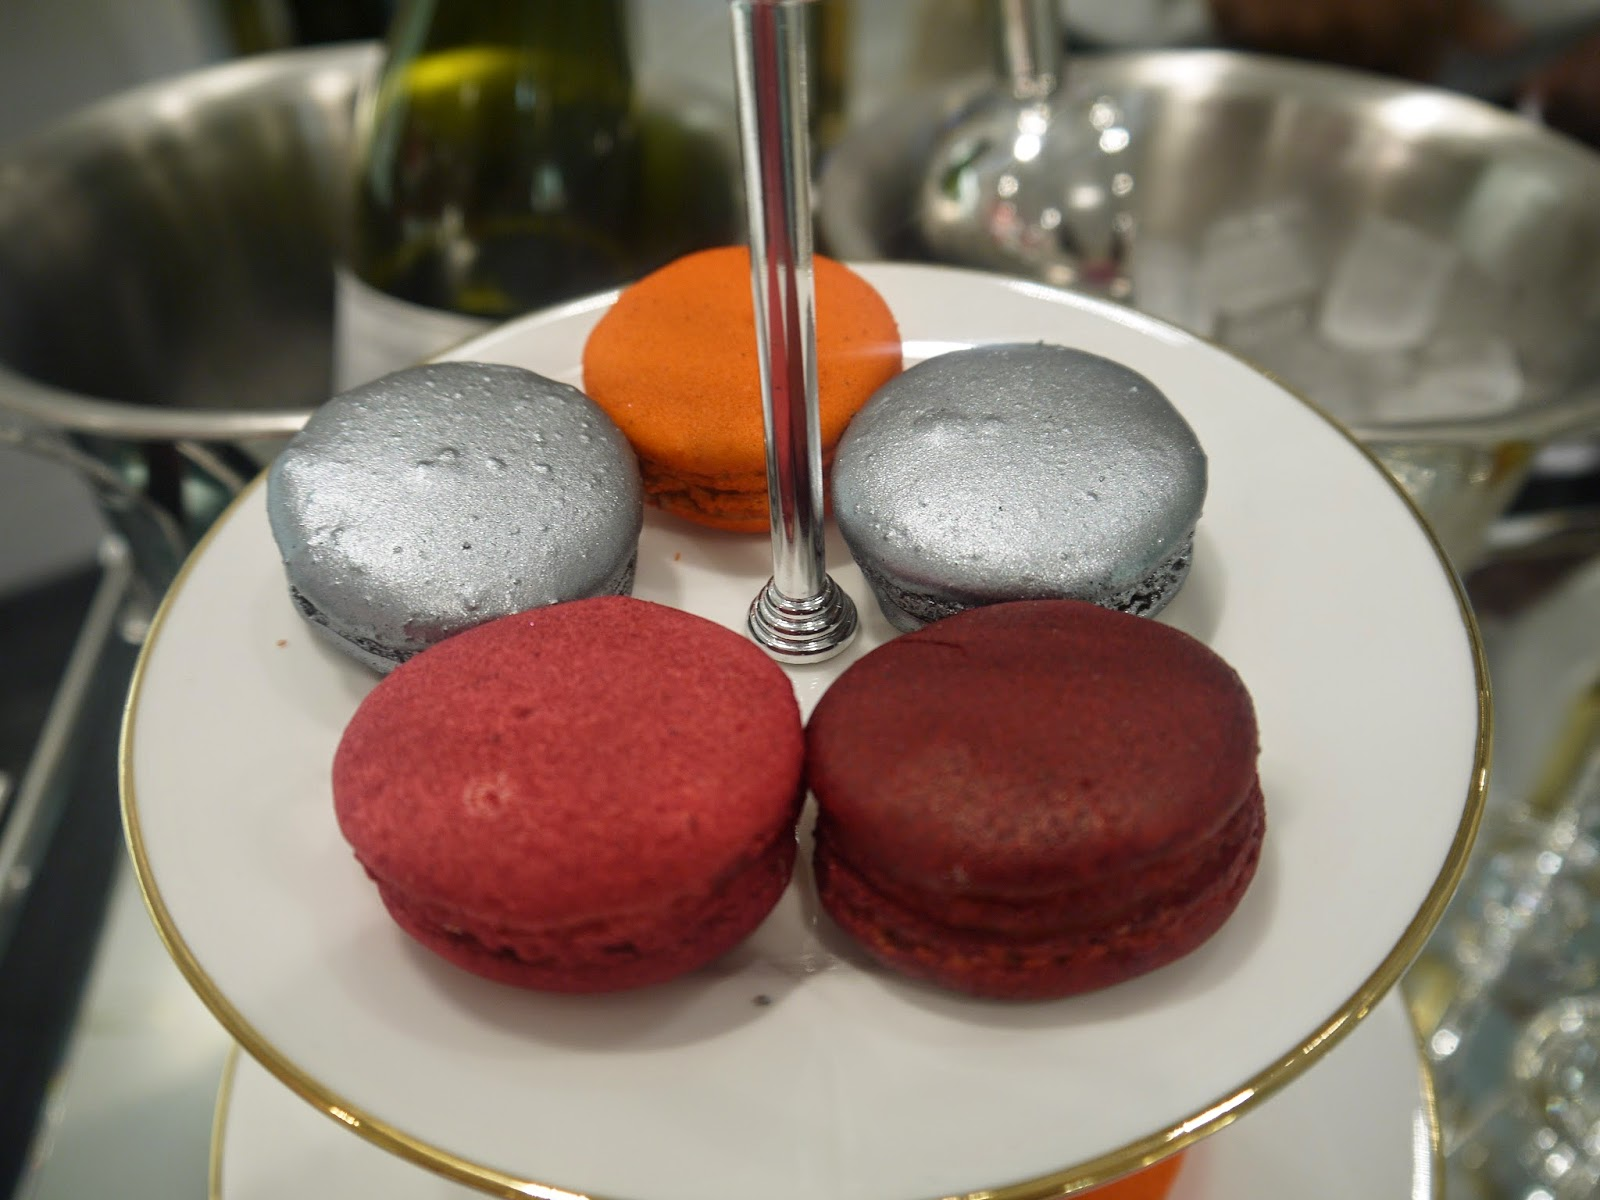 Macaroons at the Kate spade Event